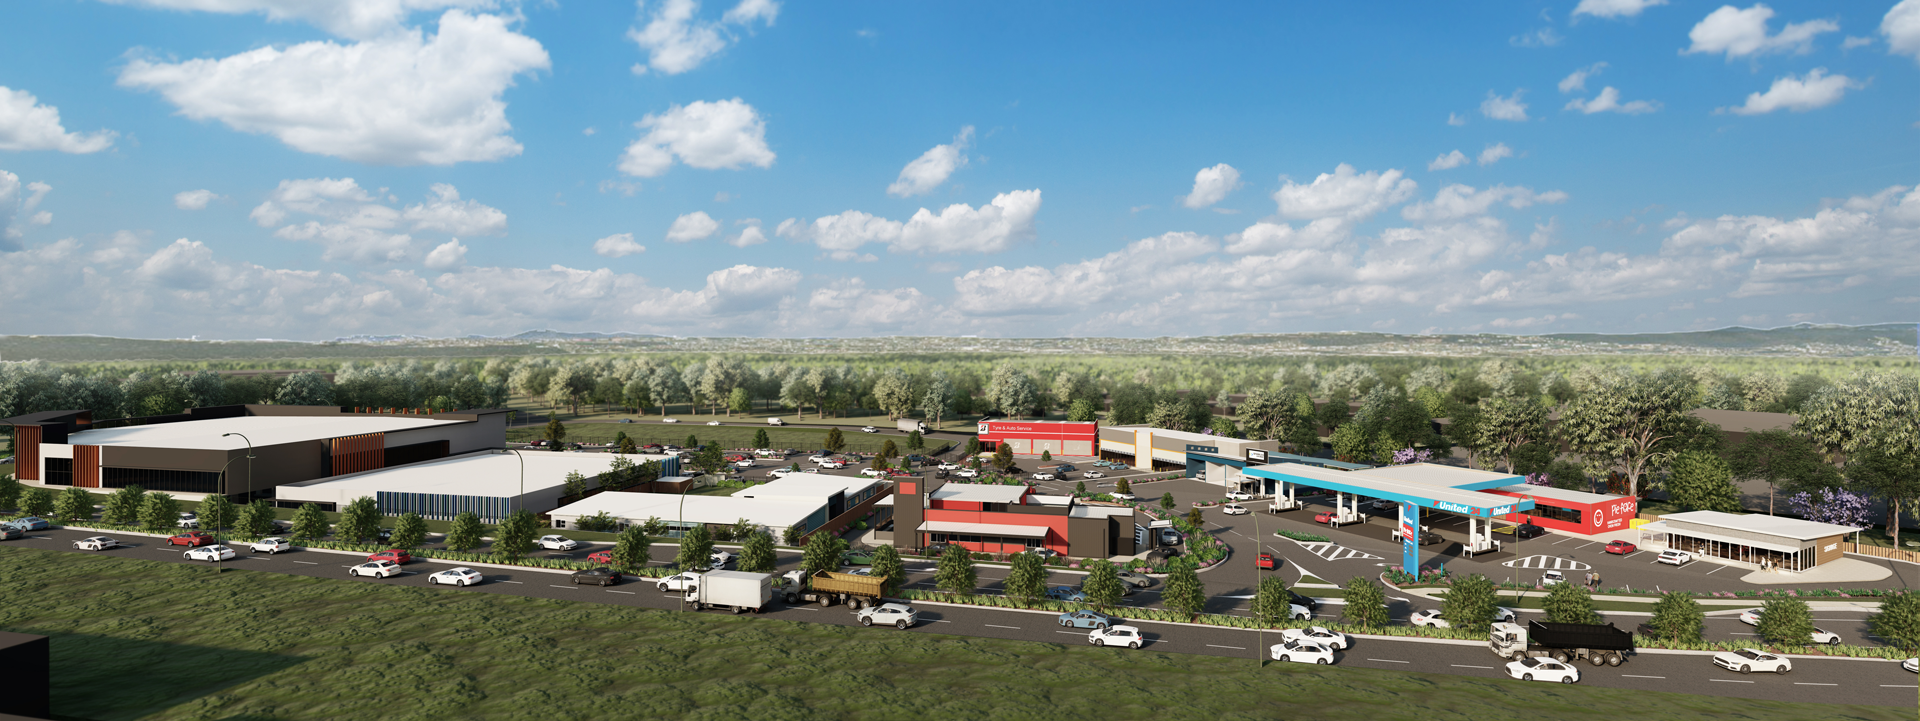 Artist's impression of Berrinba Central showing a complex of warehouses, shops and a service station with car parking, set against a main road and bushland